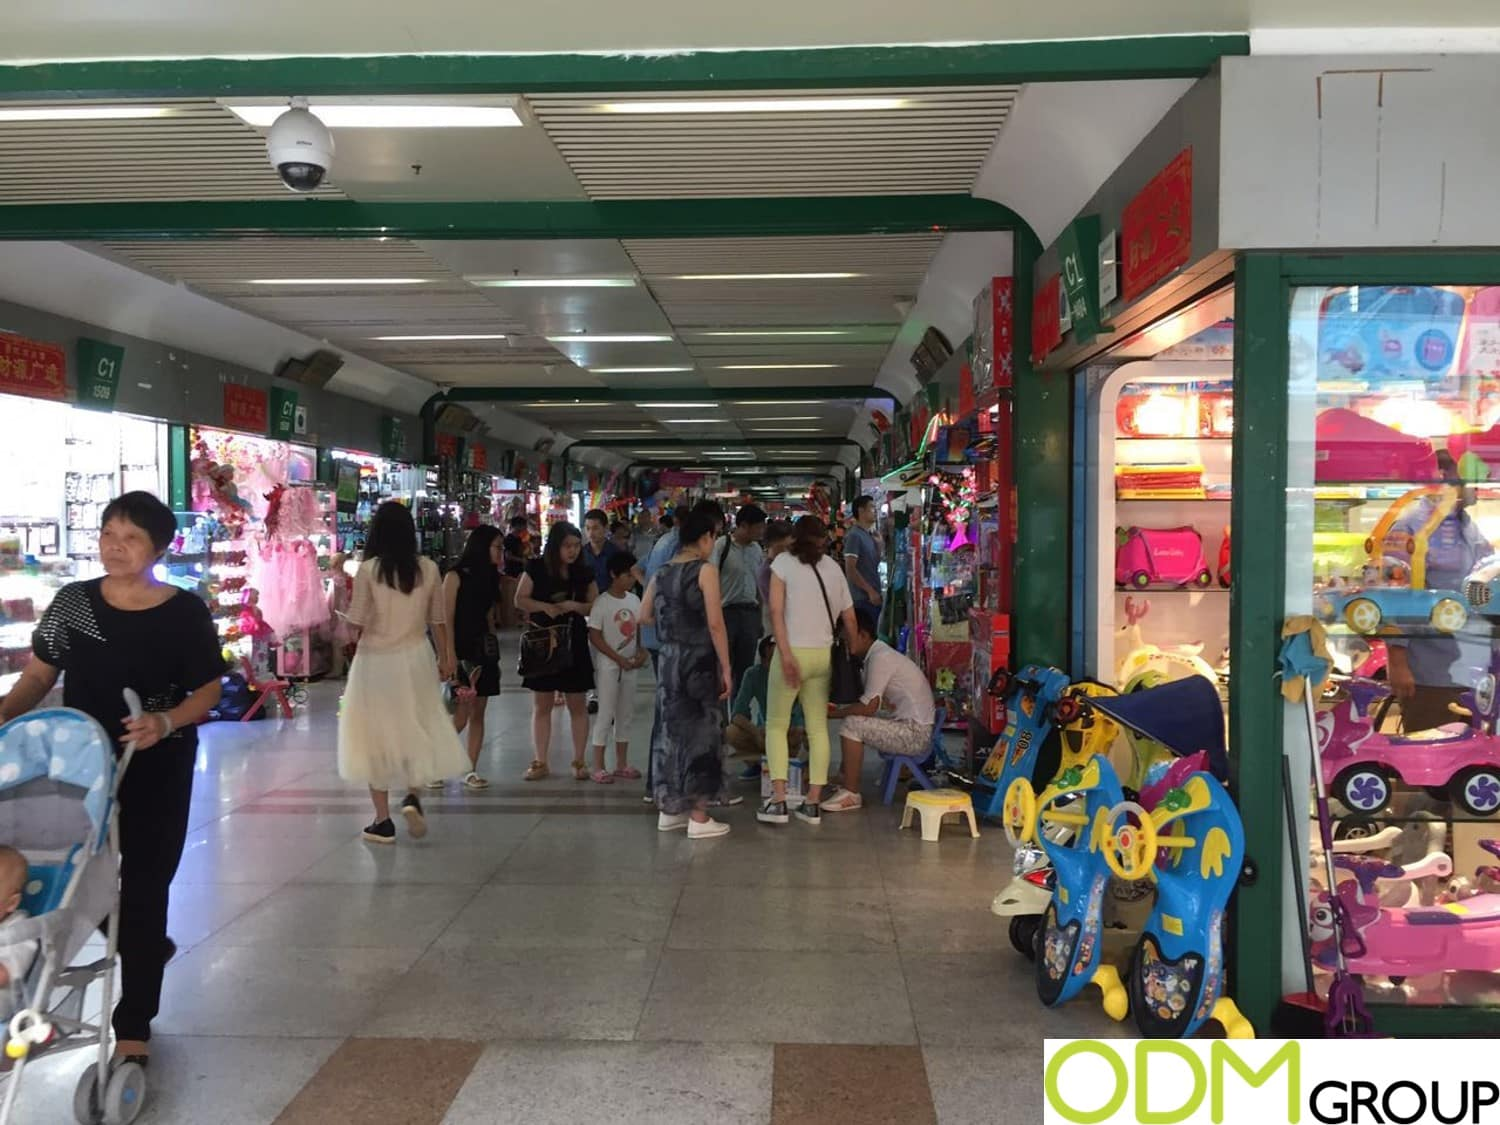 Buyers Guide: How to access the Yiwu market